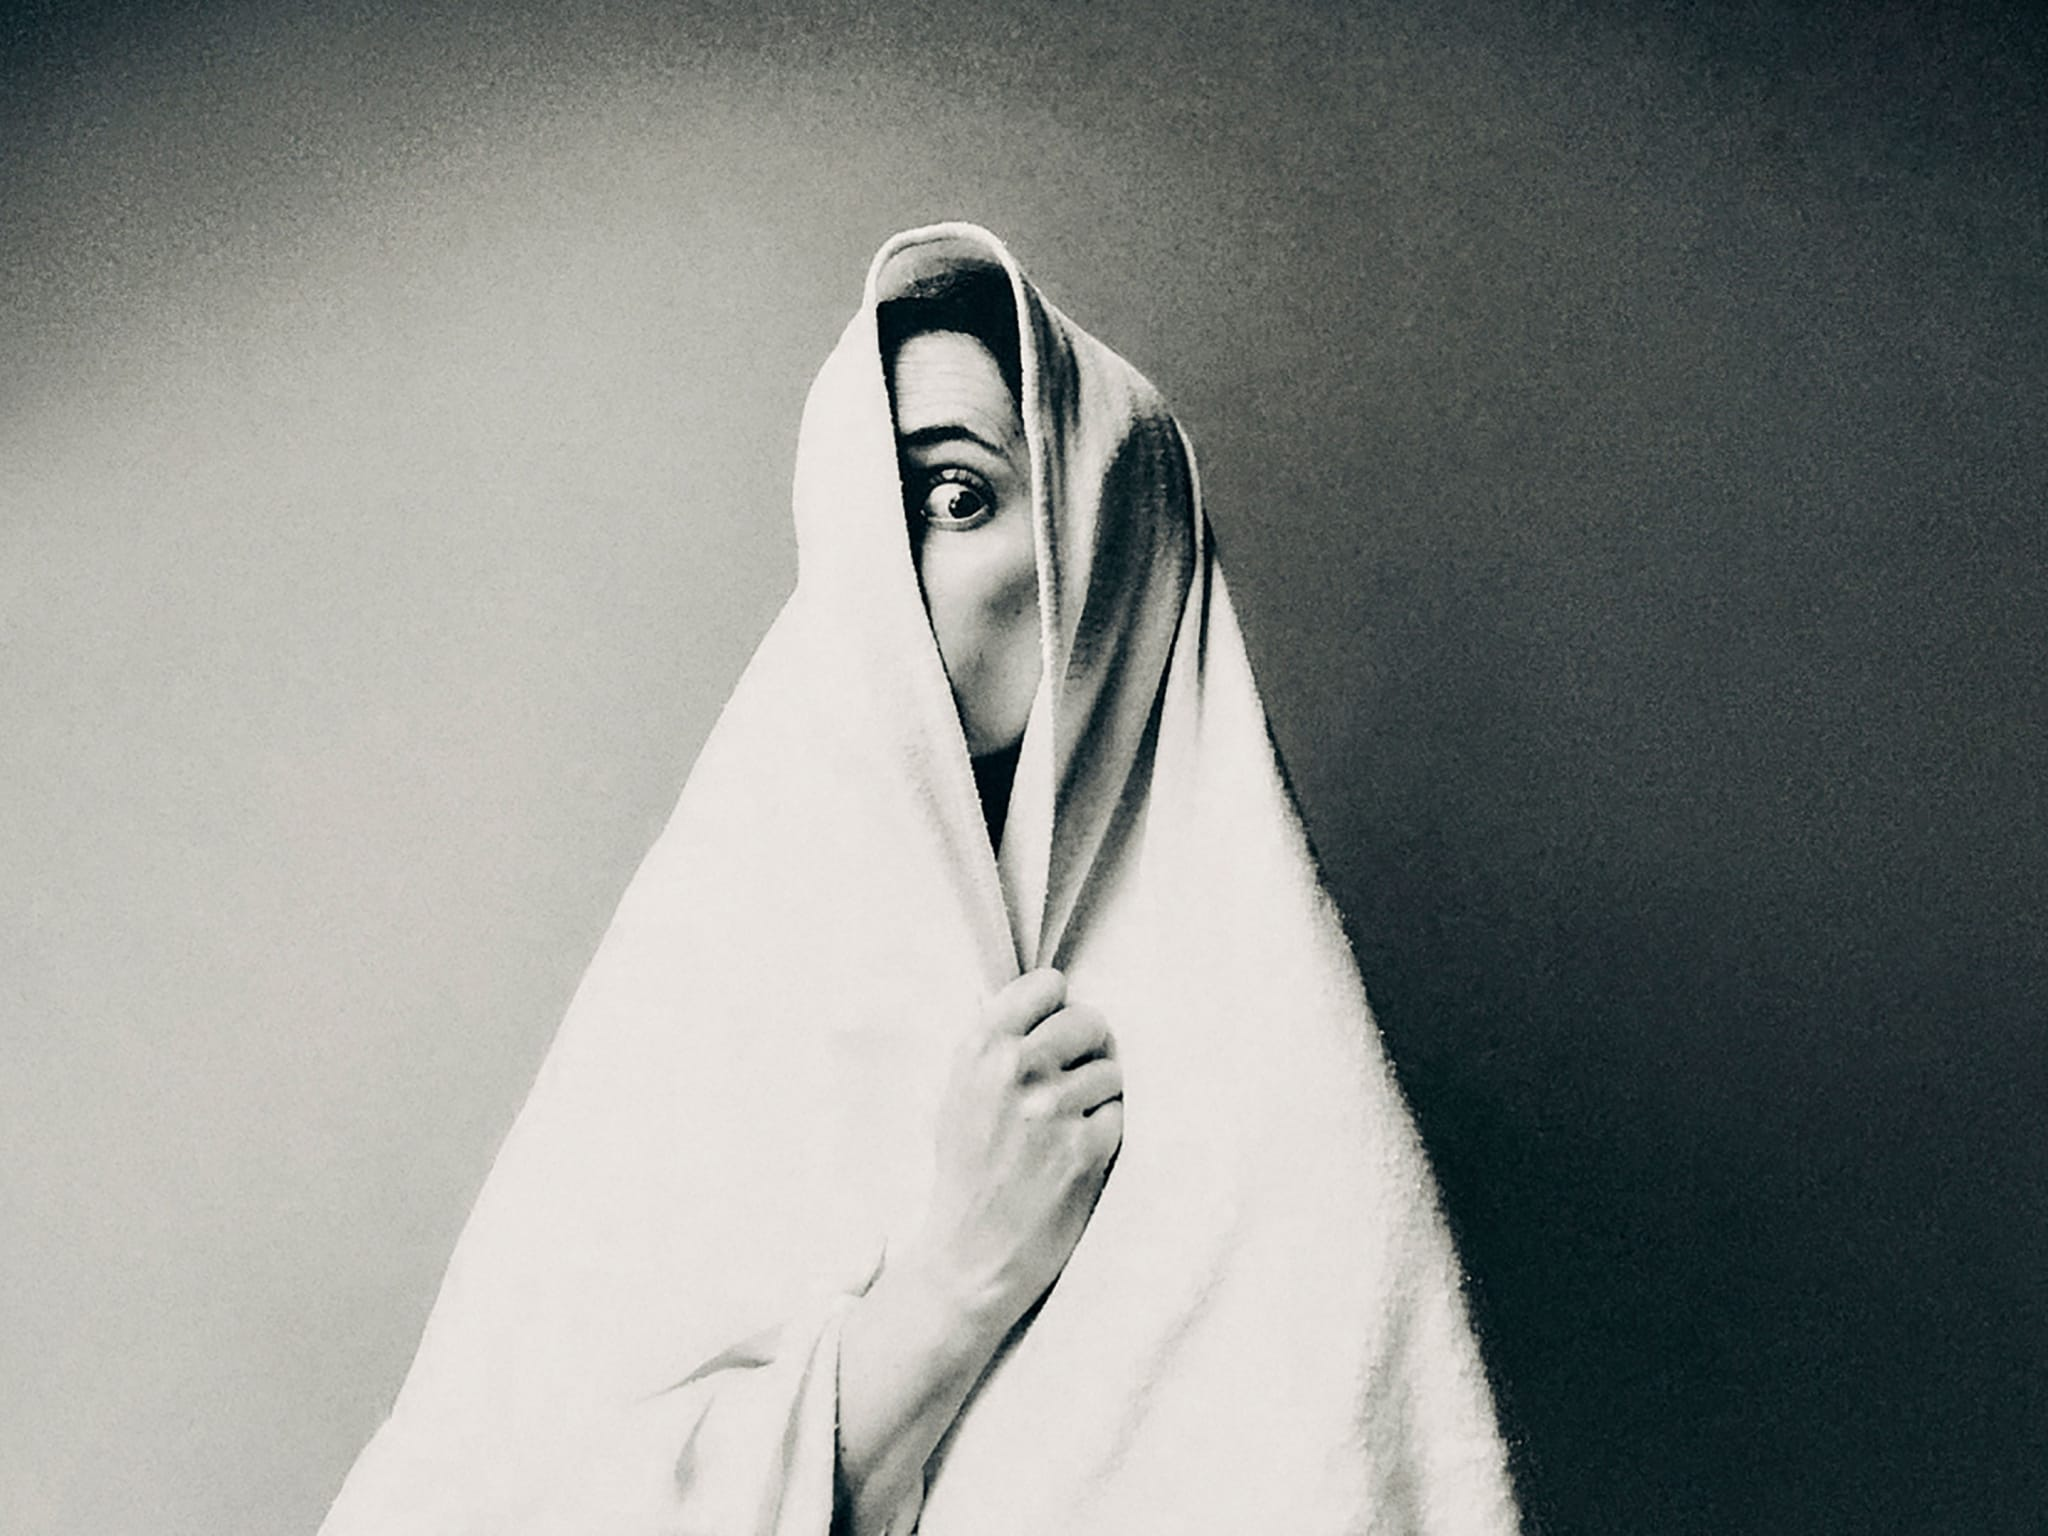 woman wrapped in a white blanket